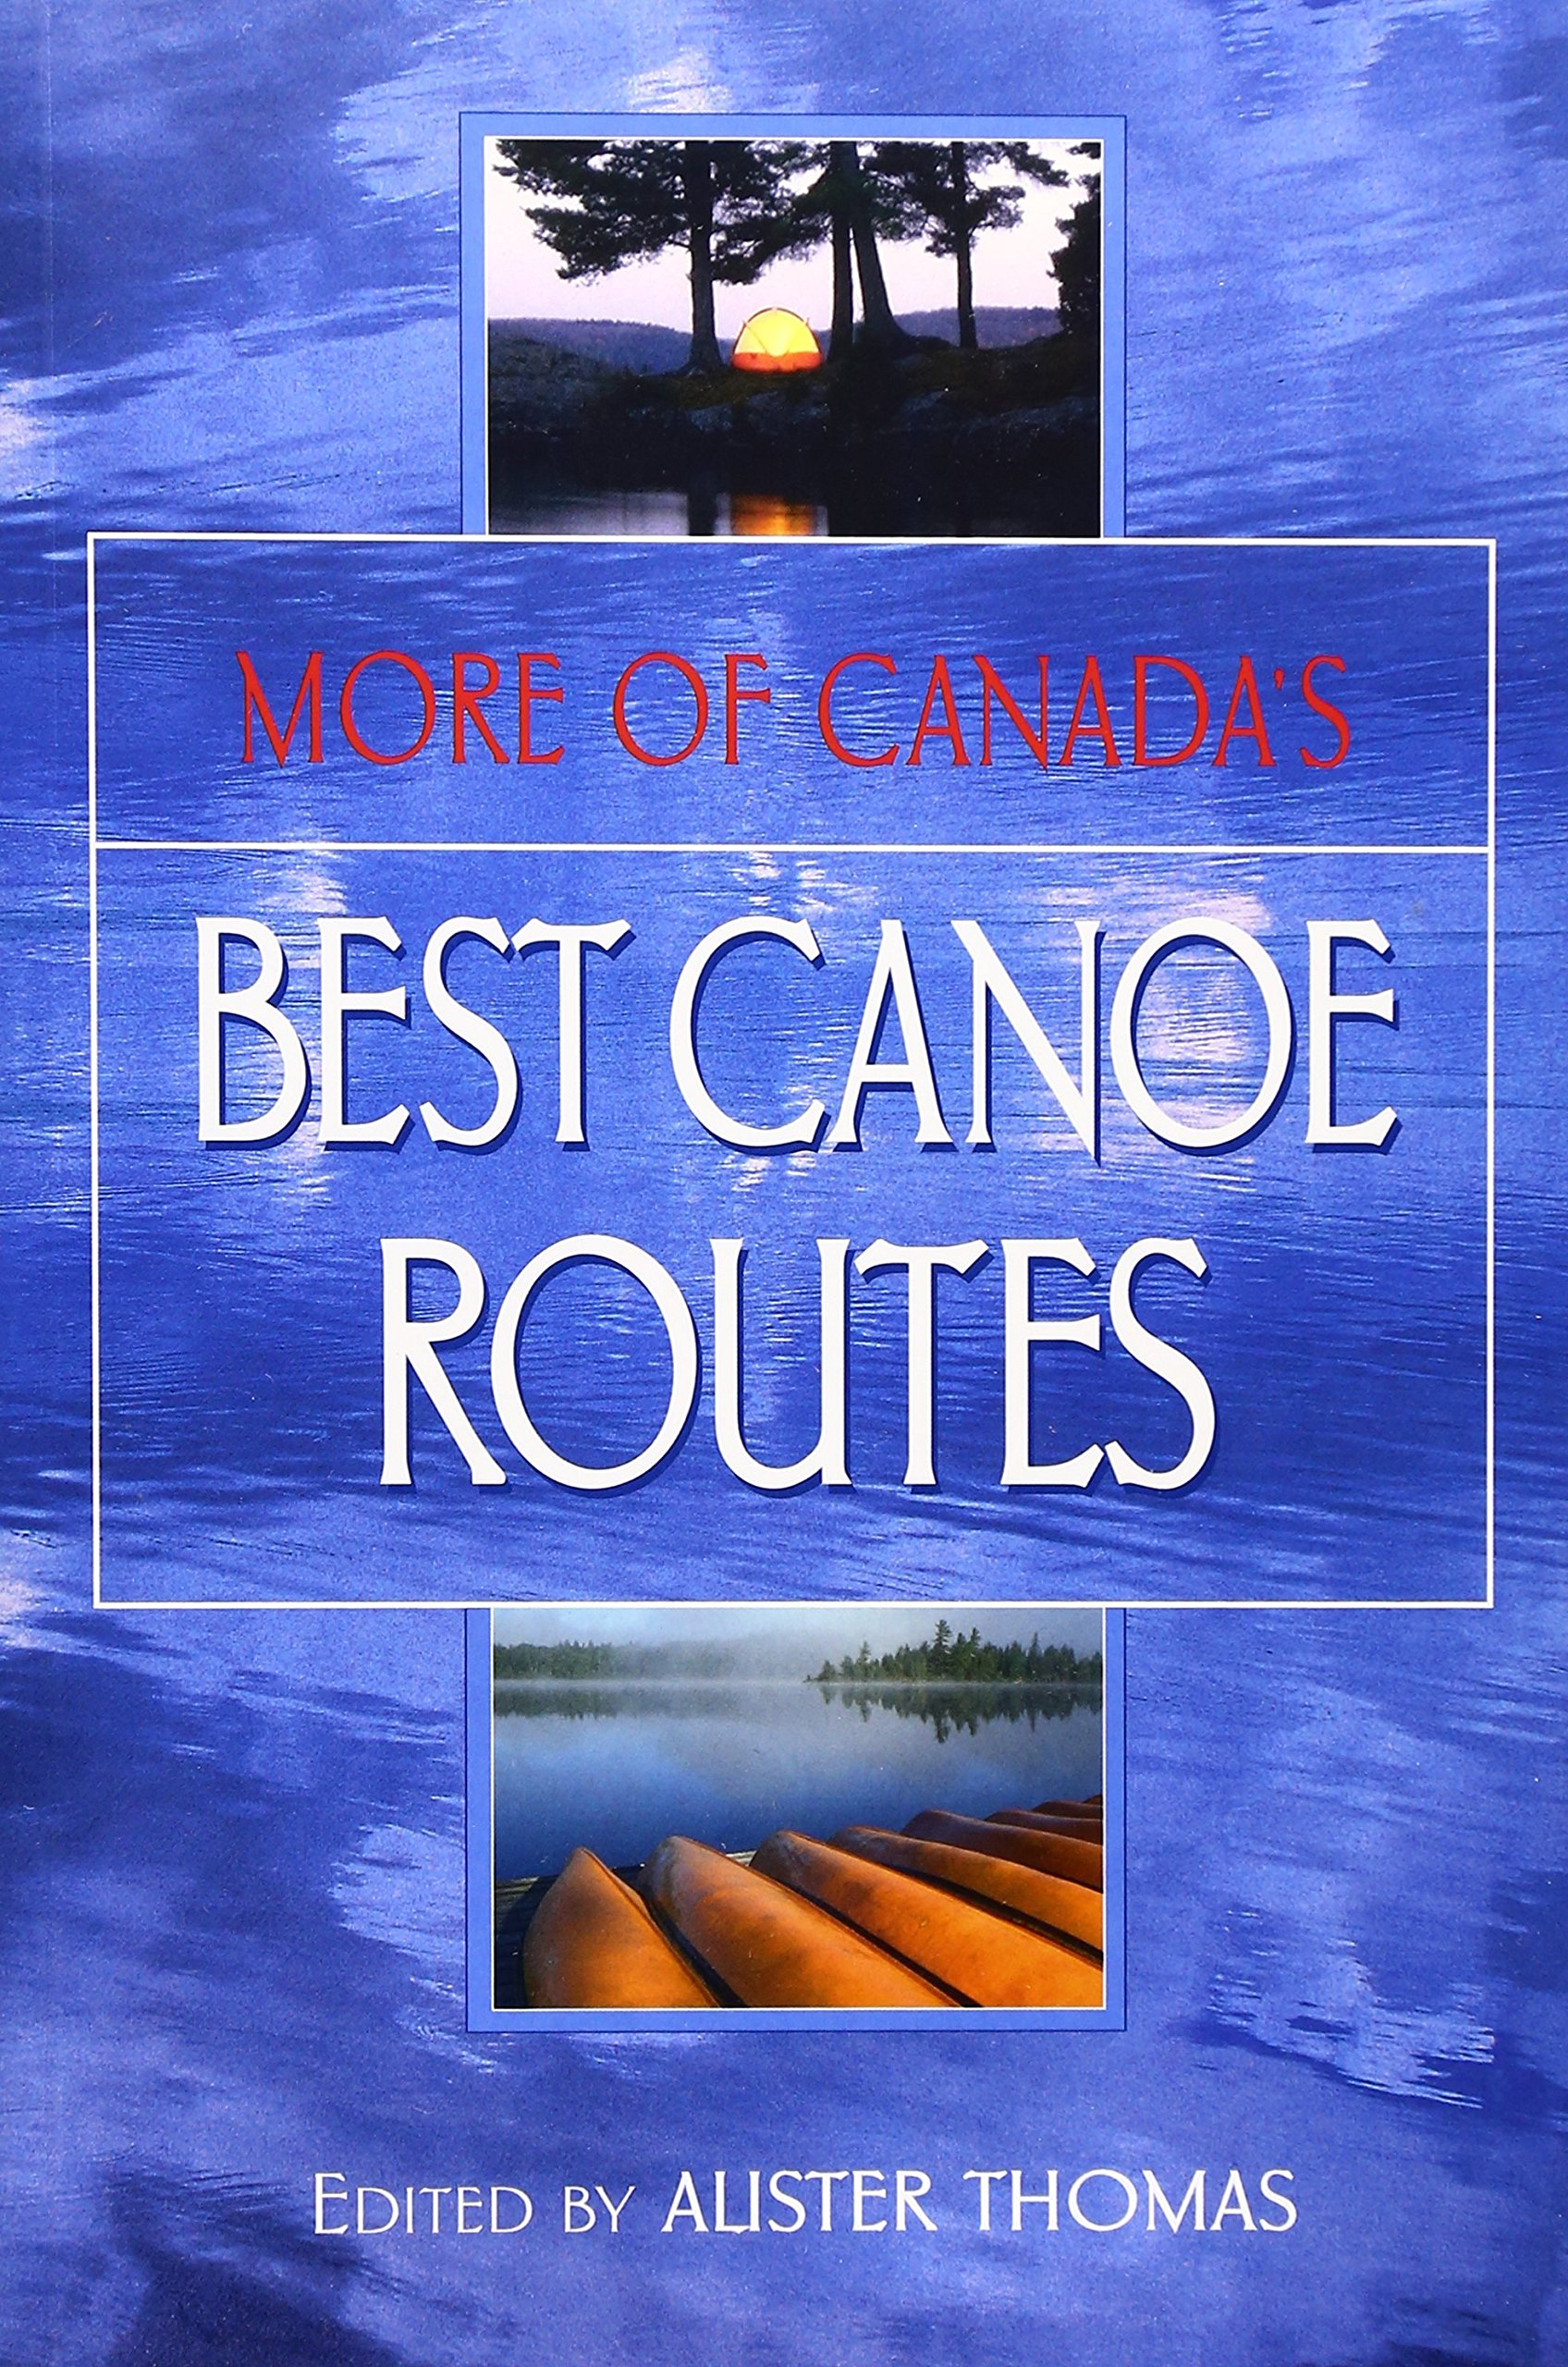 Image for More of Canada's Best Canoe Routes. First Edition.